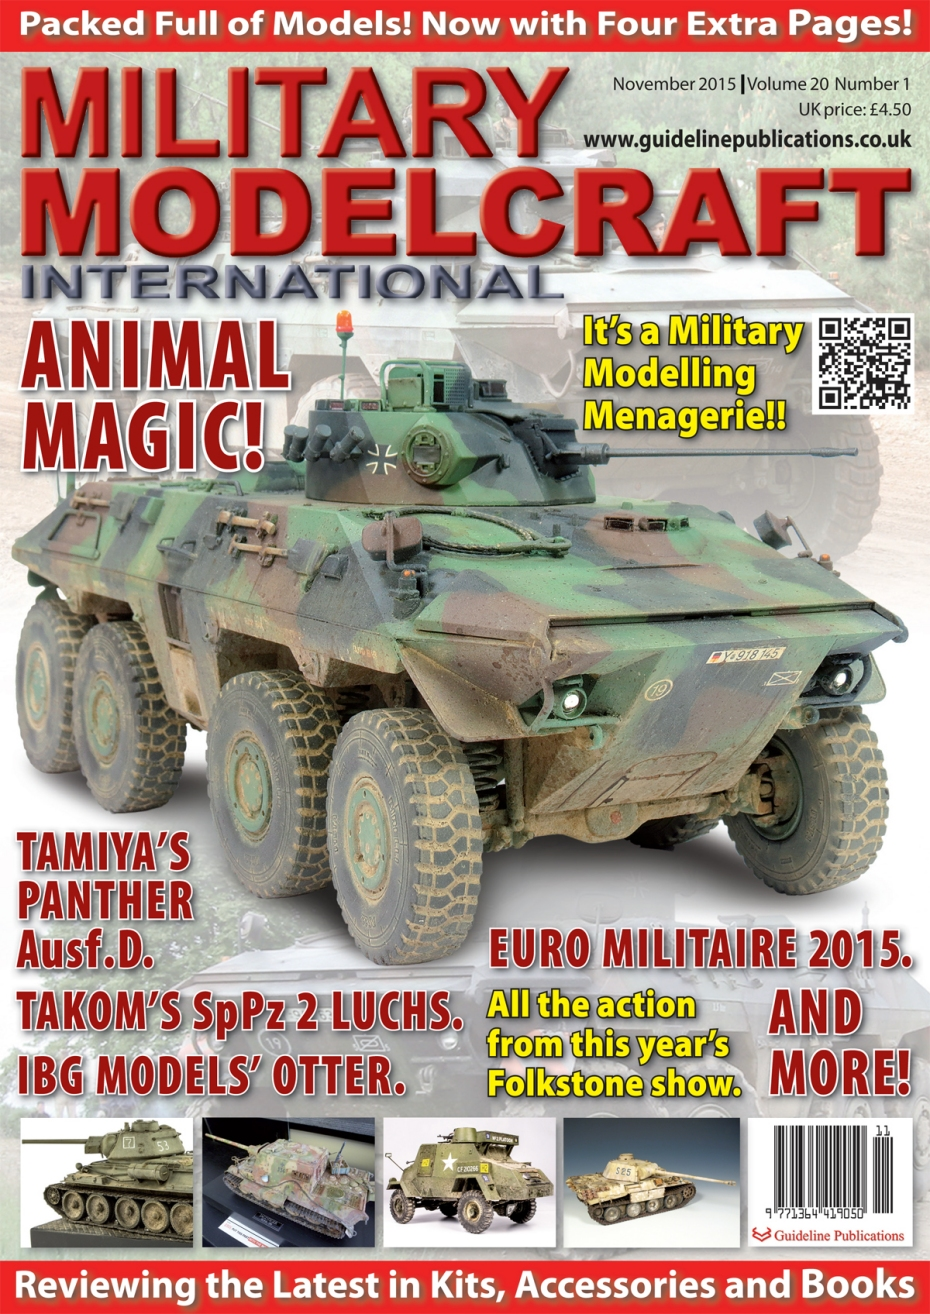 Guideline Publications Military Modelcraft November 2015 vol 20-01